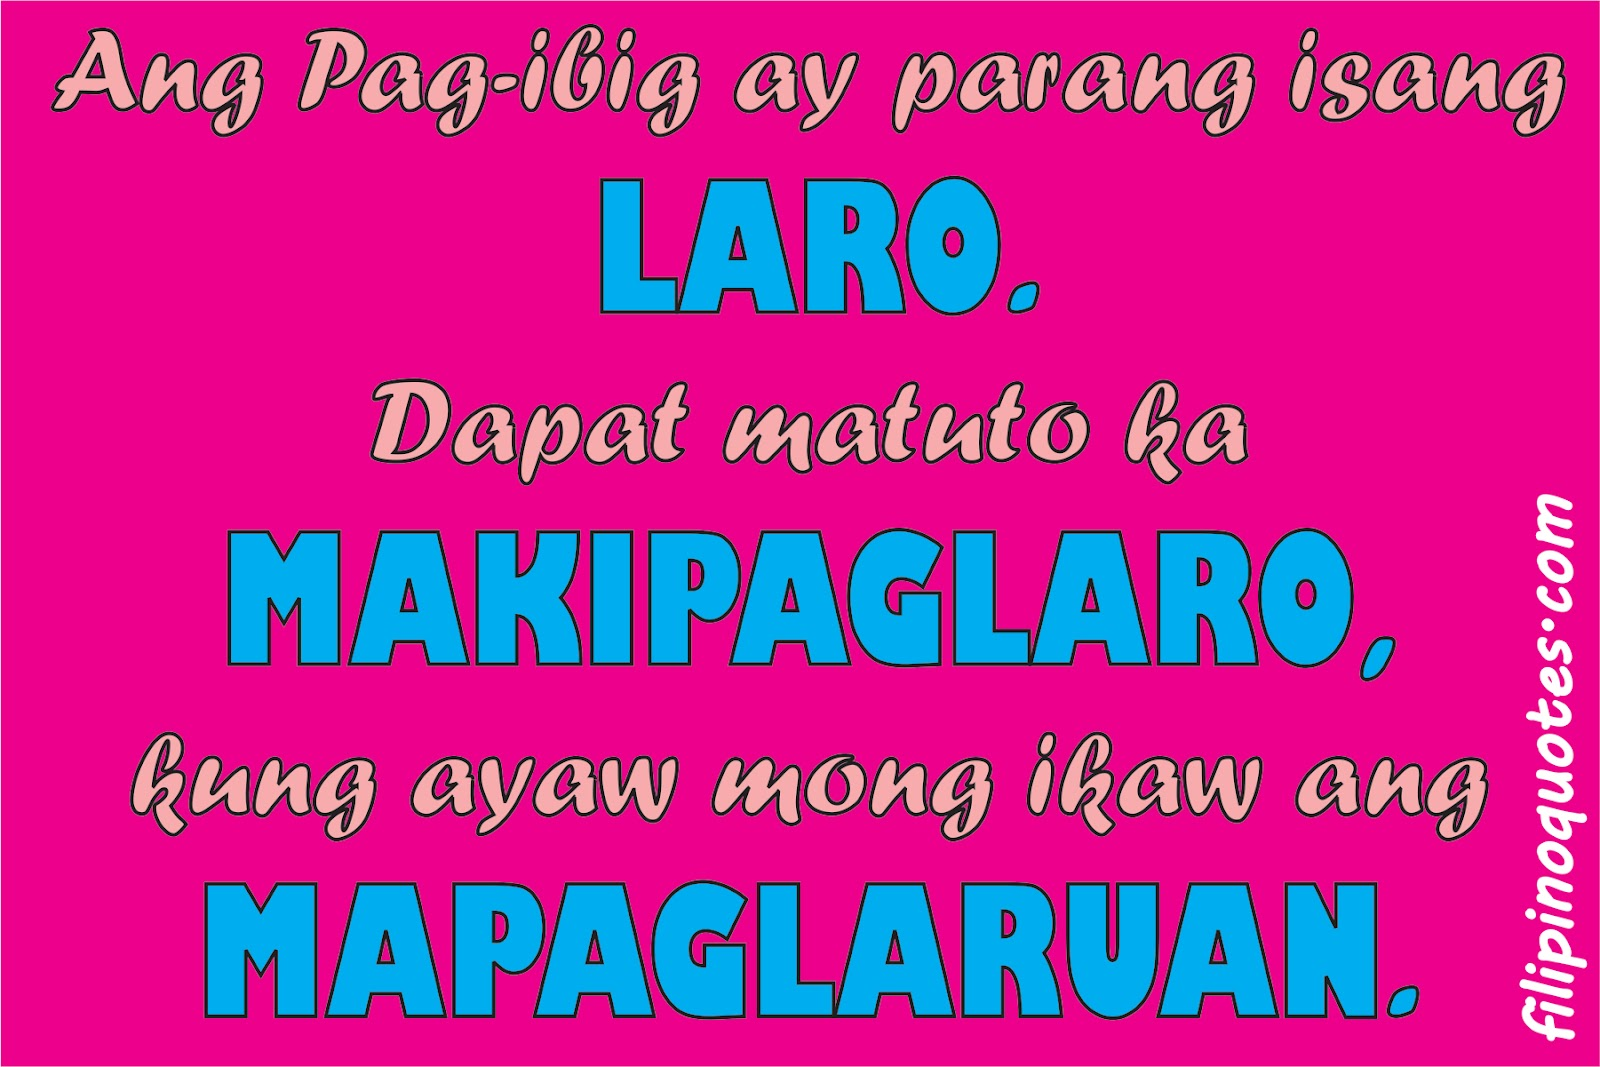 Tagalog Love Quotes (May 2012)